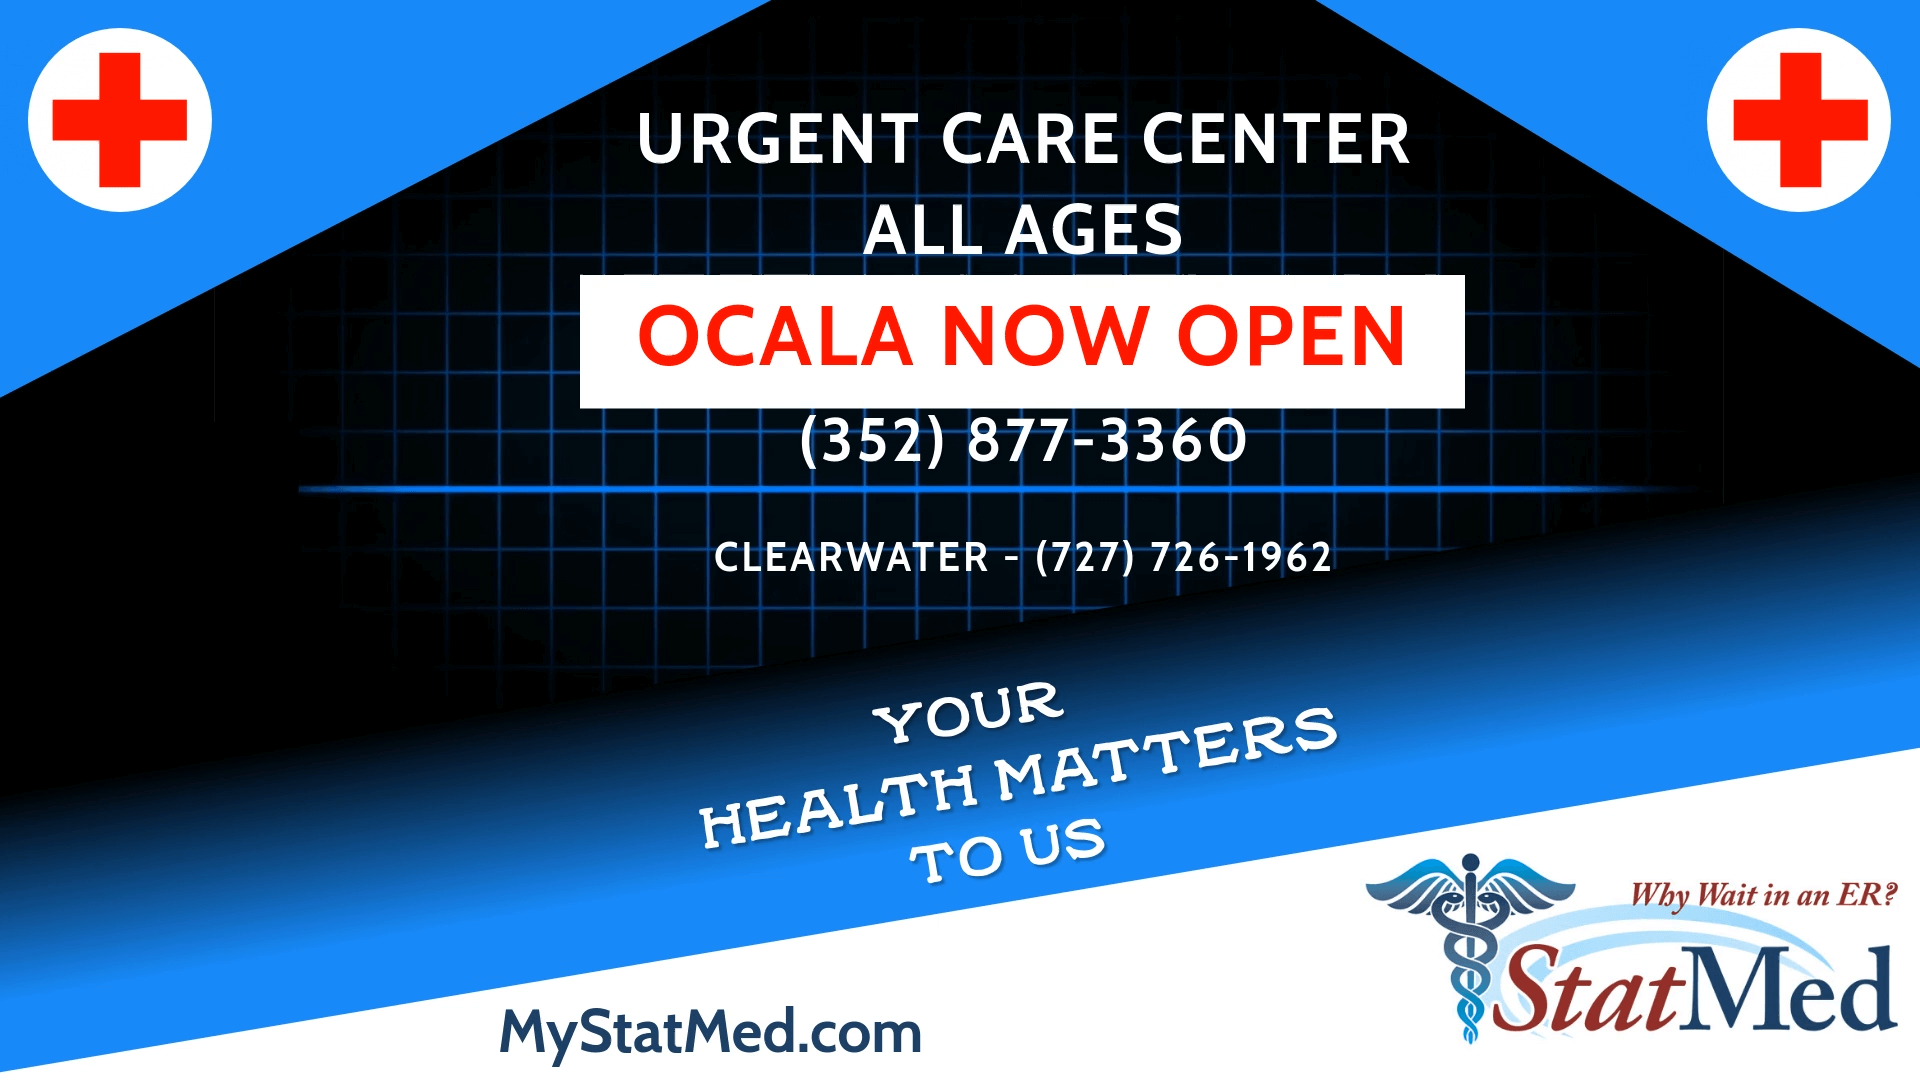 StatMed urgent Care Center Ocala